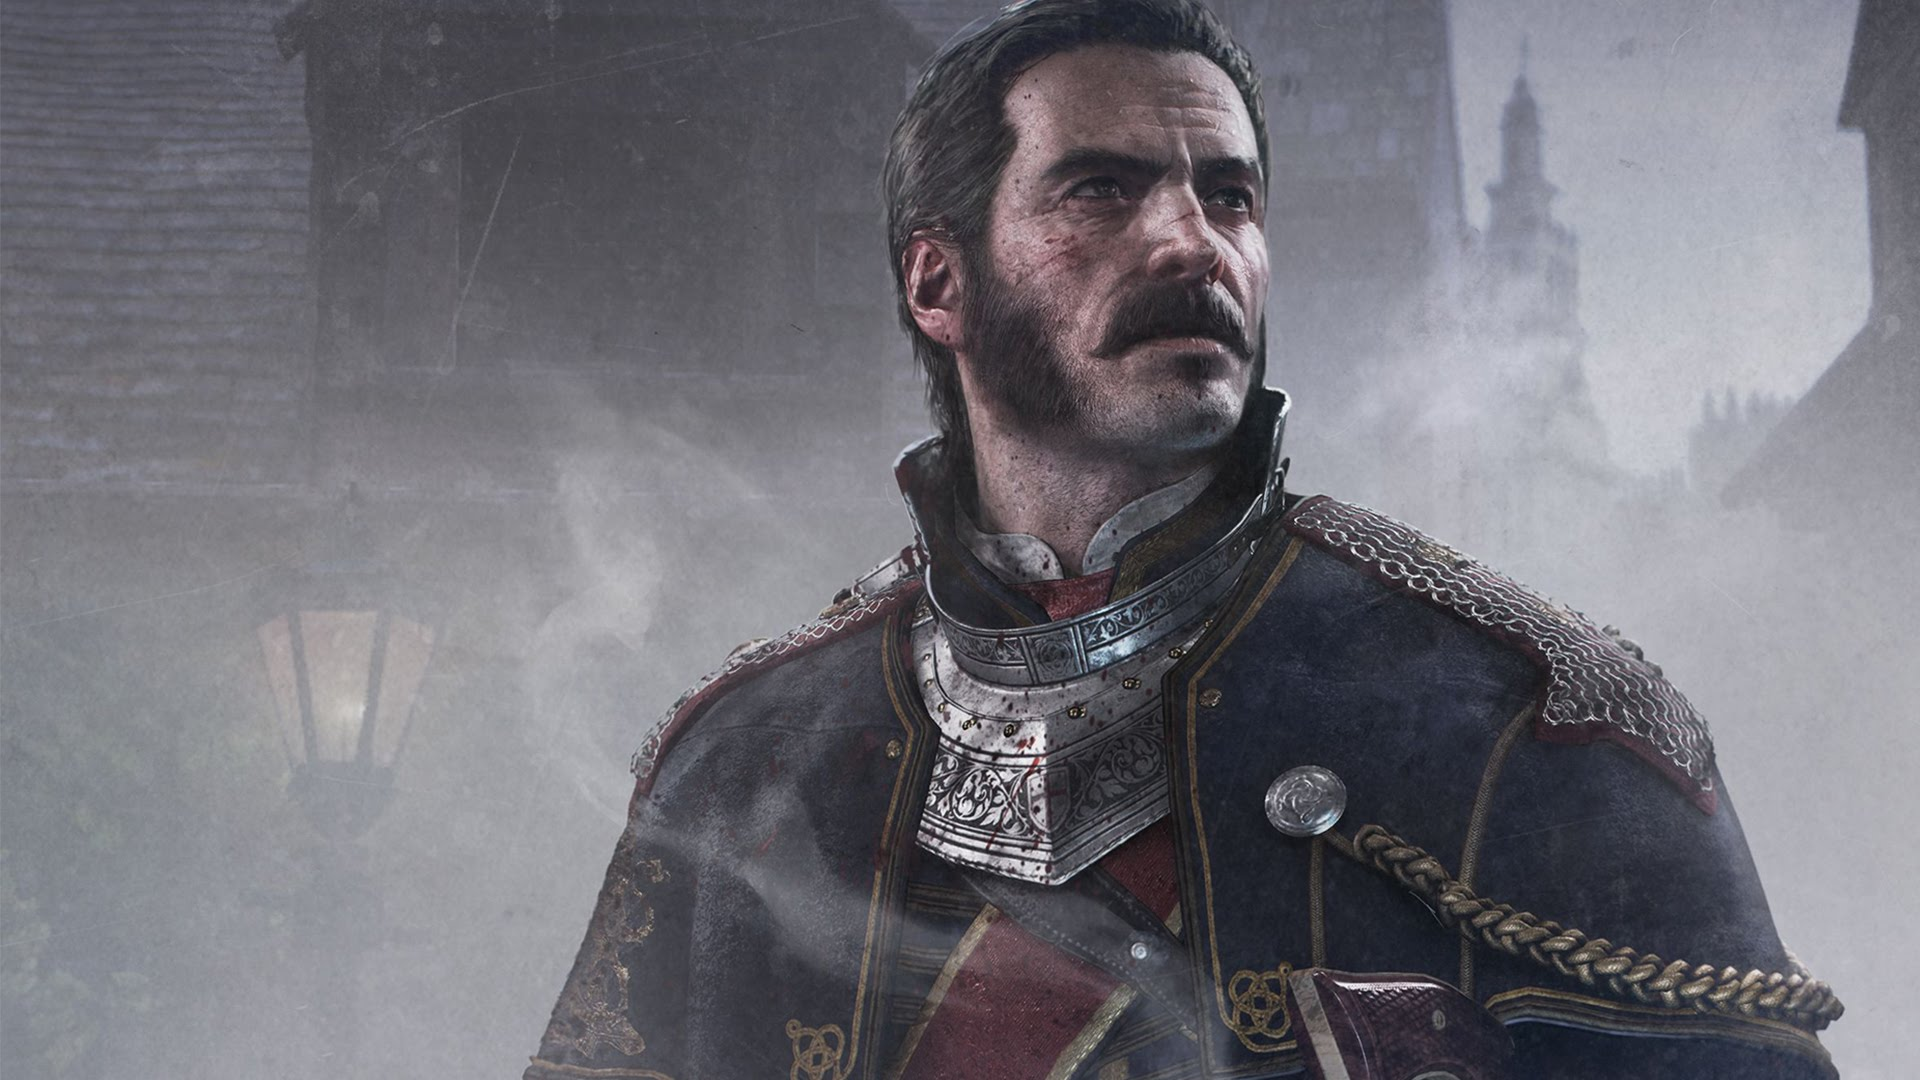 PlayStation Experience: The Order 1886 Gameplay Video